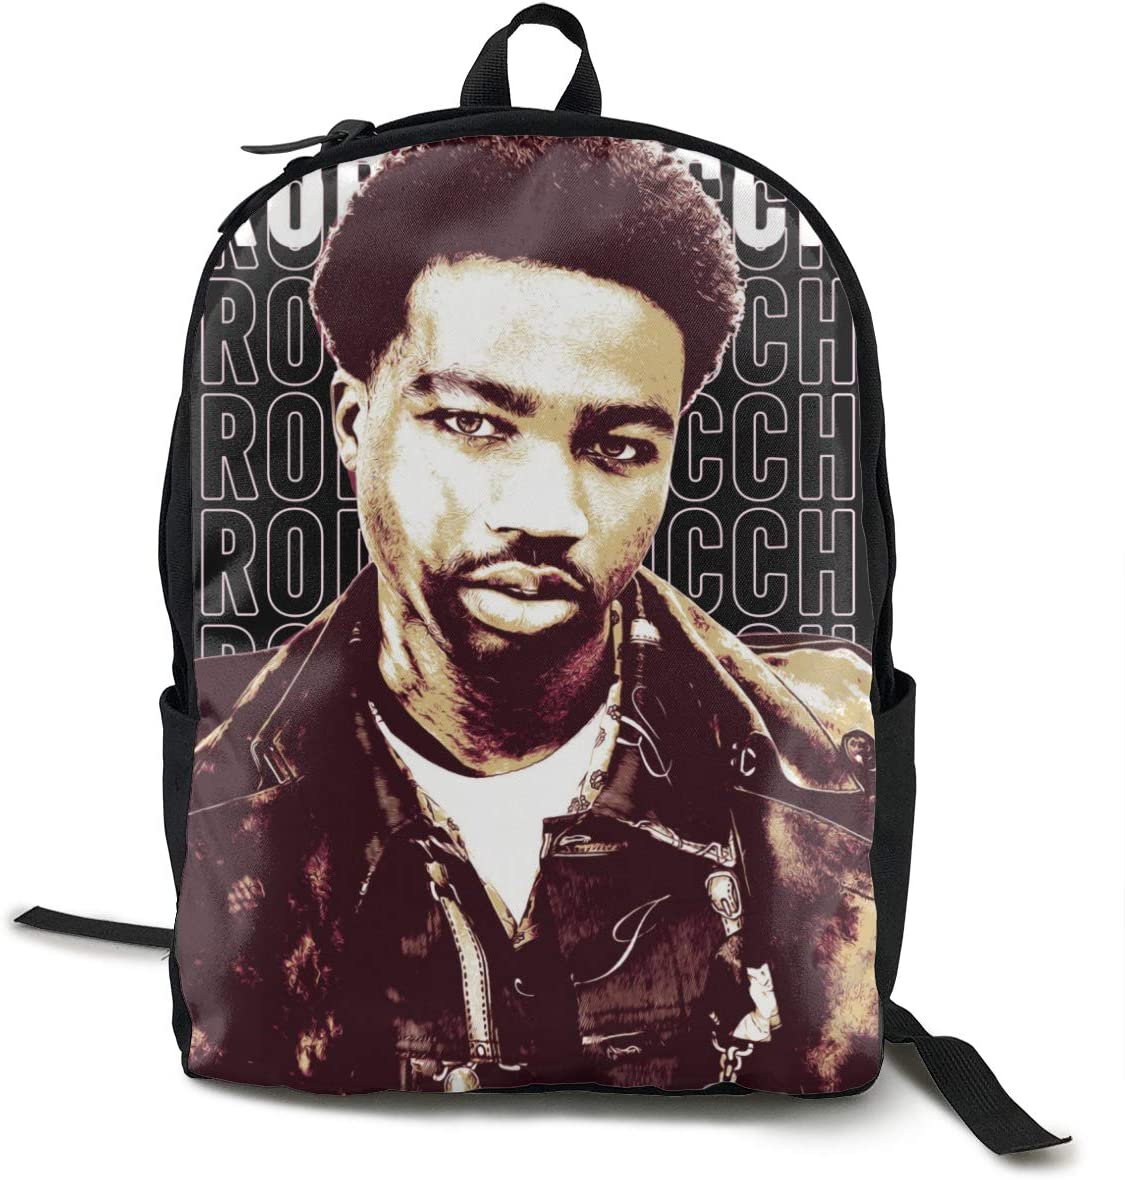 Unisex Rod-dy RIC-ch Travel Laptop Backpack Slim Durable Laptops Backpack Water Resistant College School for Fits 16.5 Inch Leisure Schoolbag